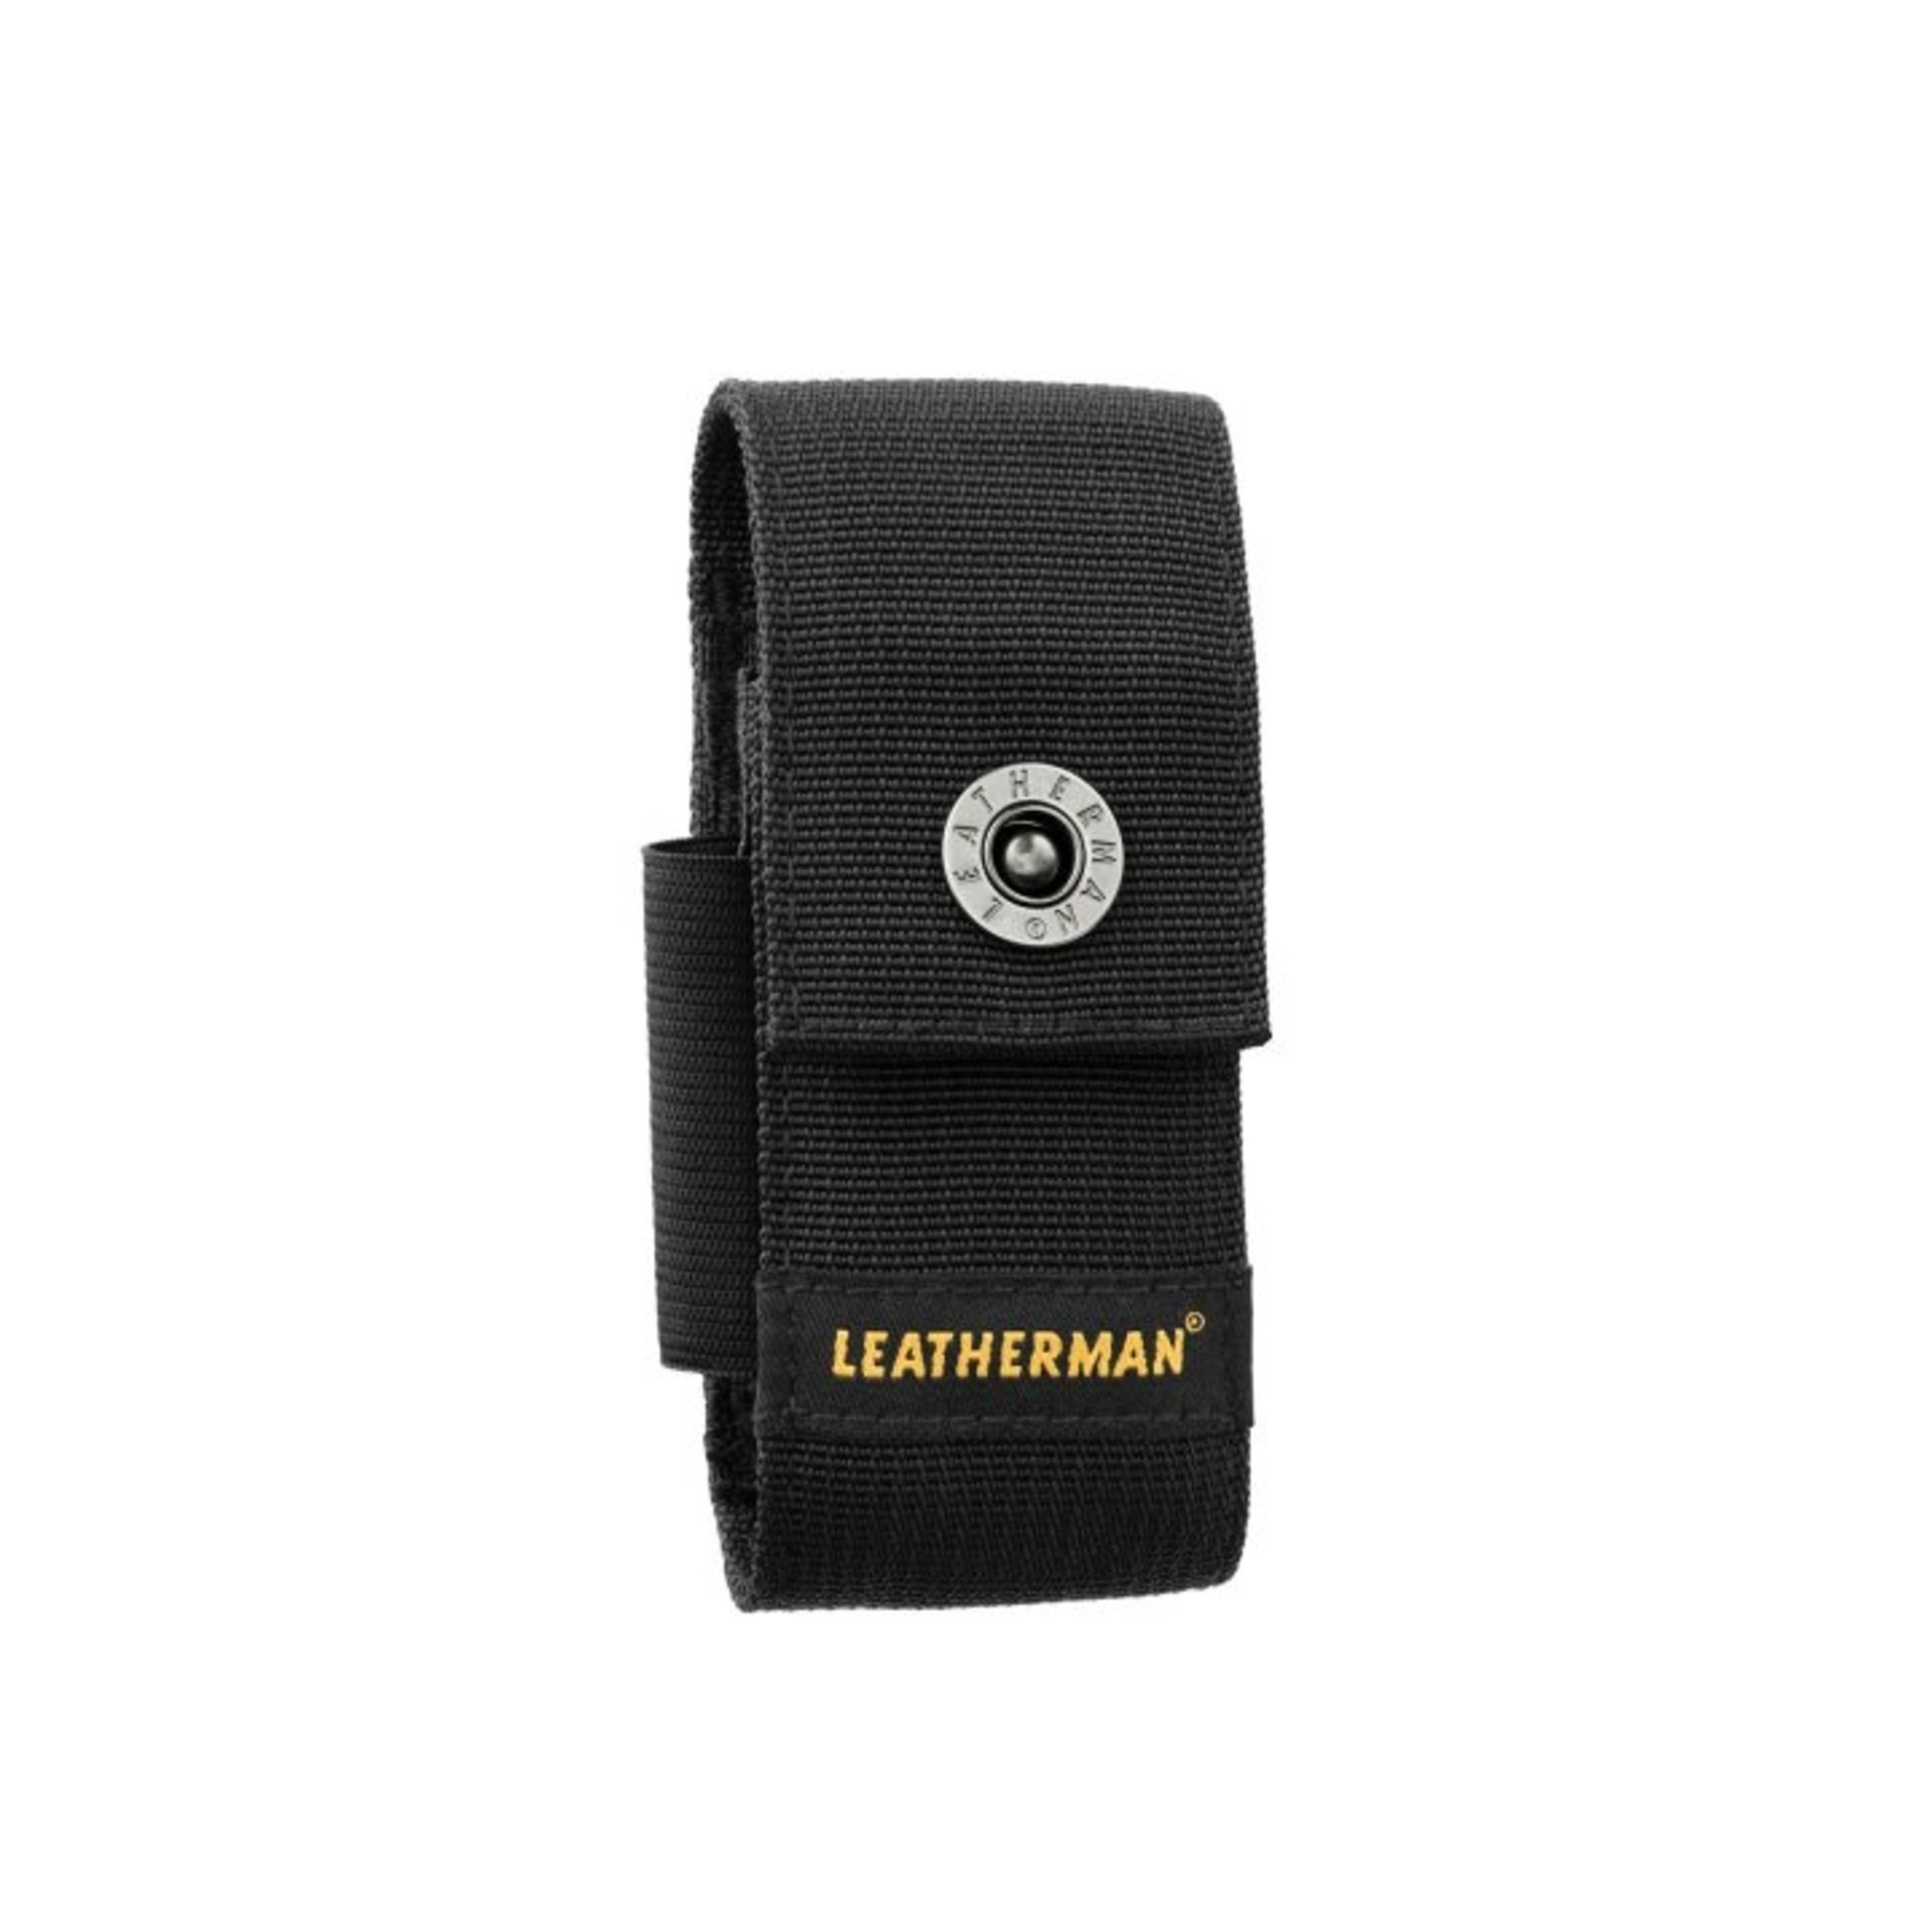 Leatherman® Sheath 4 pocket Nylon - M